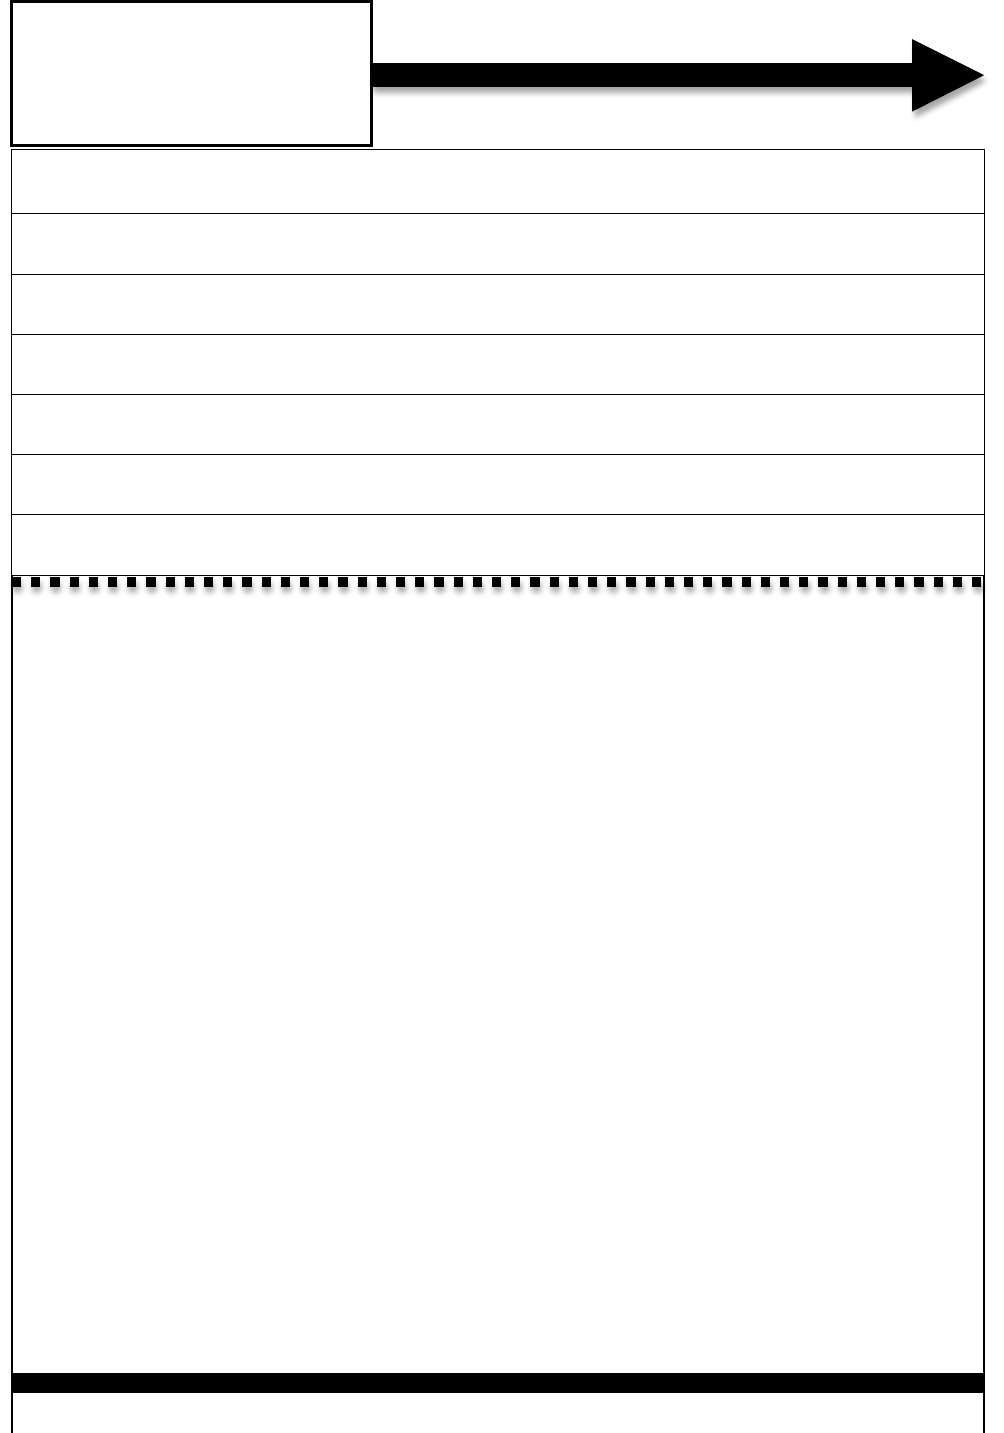 the modern fax cover sheet can help you make a professional and modern fax cover sheet 2